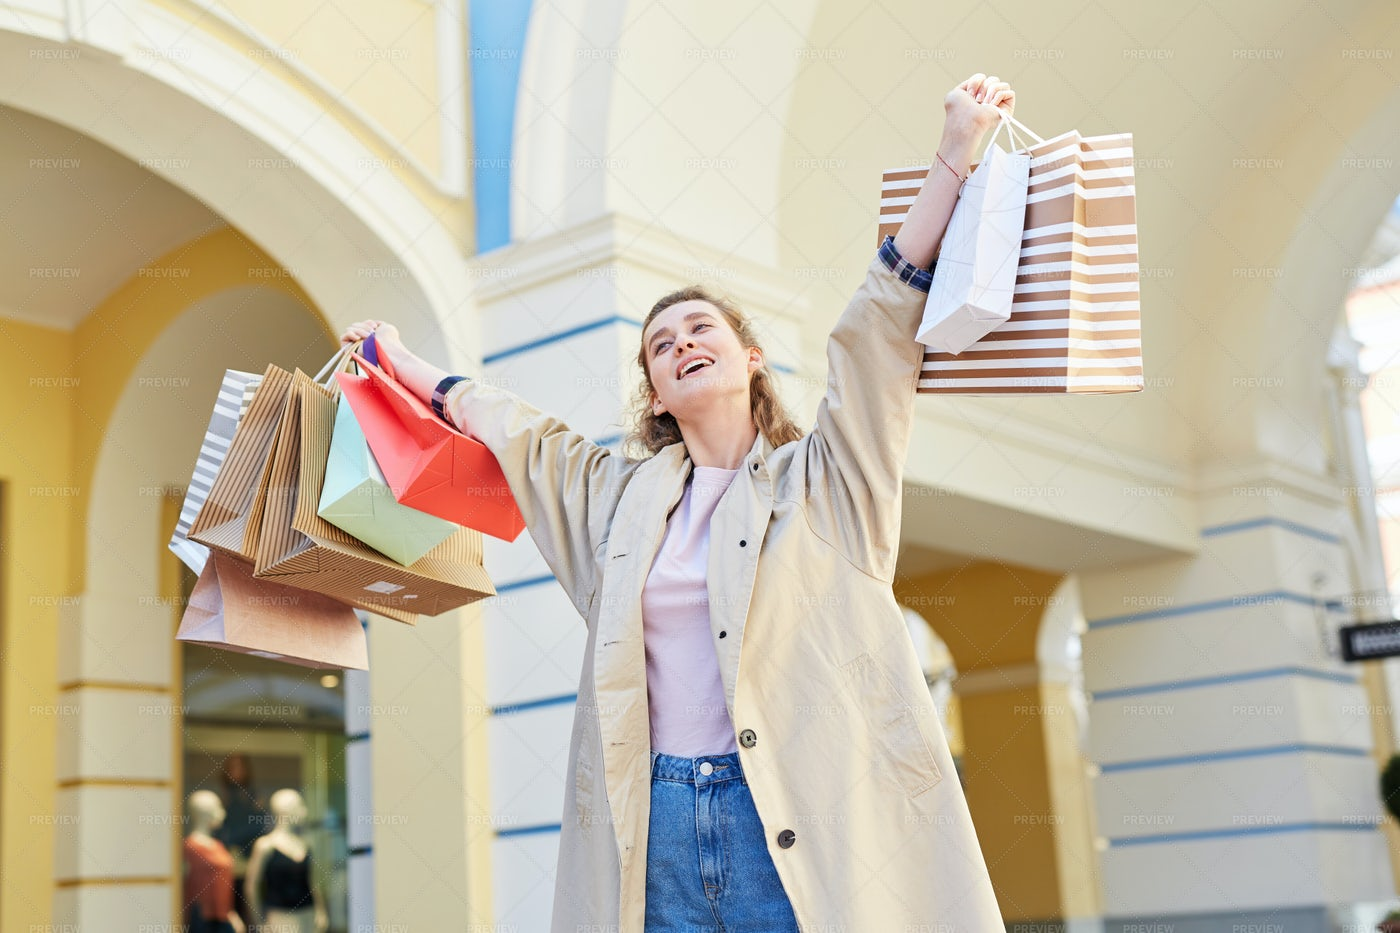 Excited Shopaholic With Paper Bags: Stock Photos